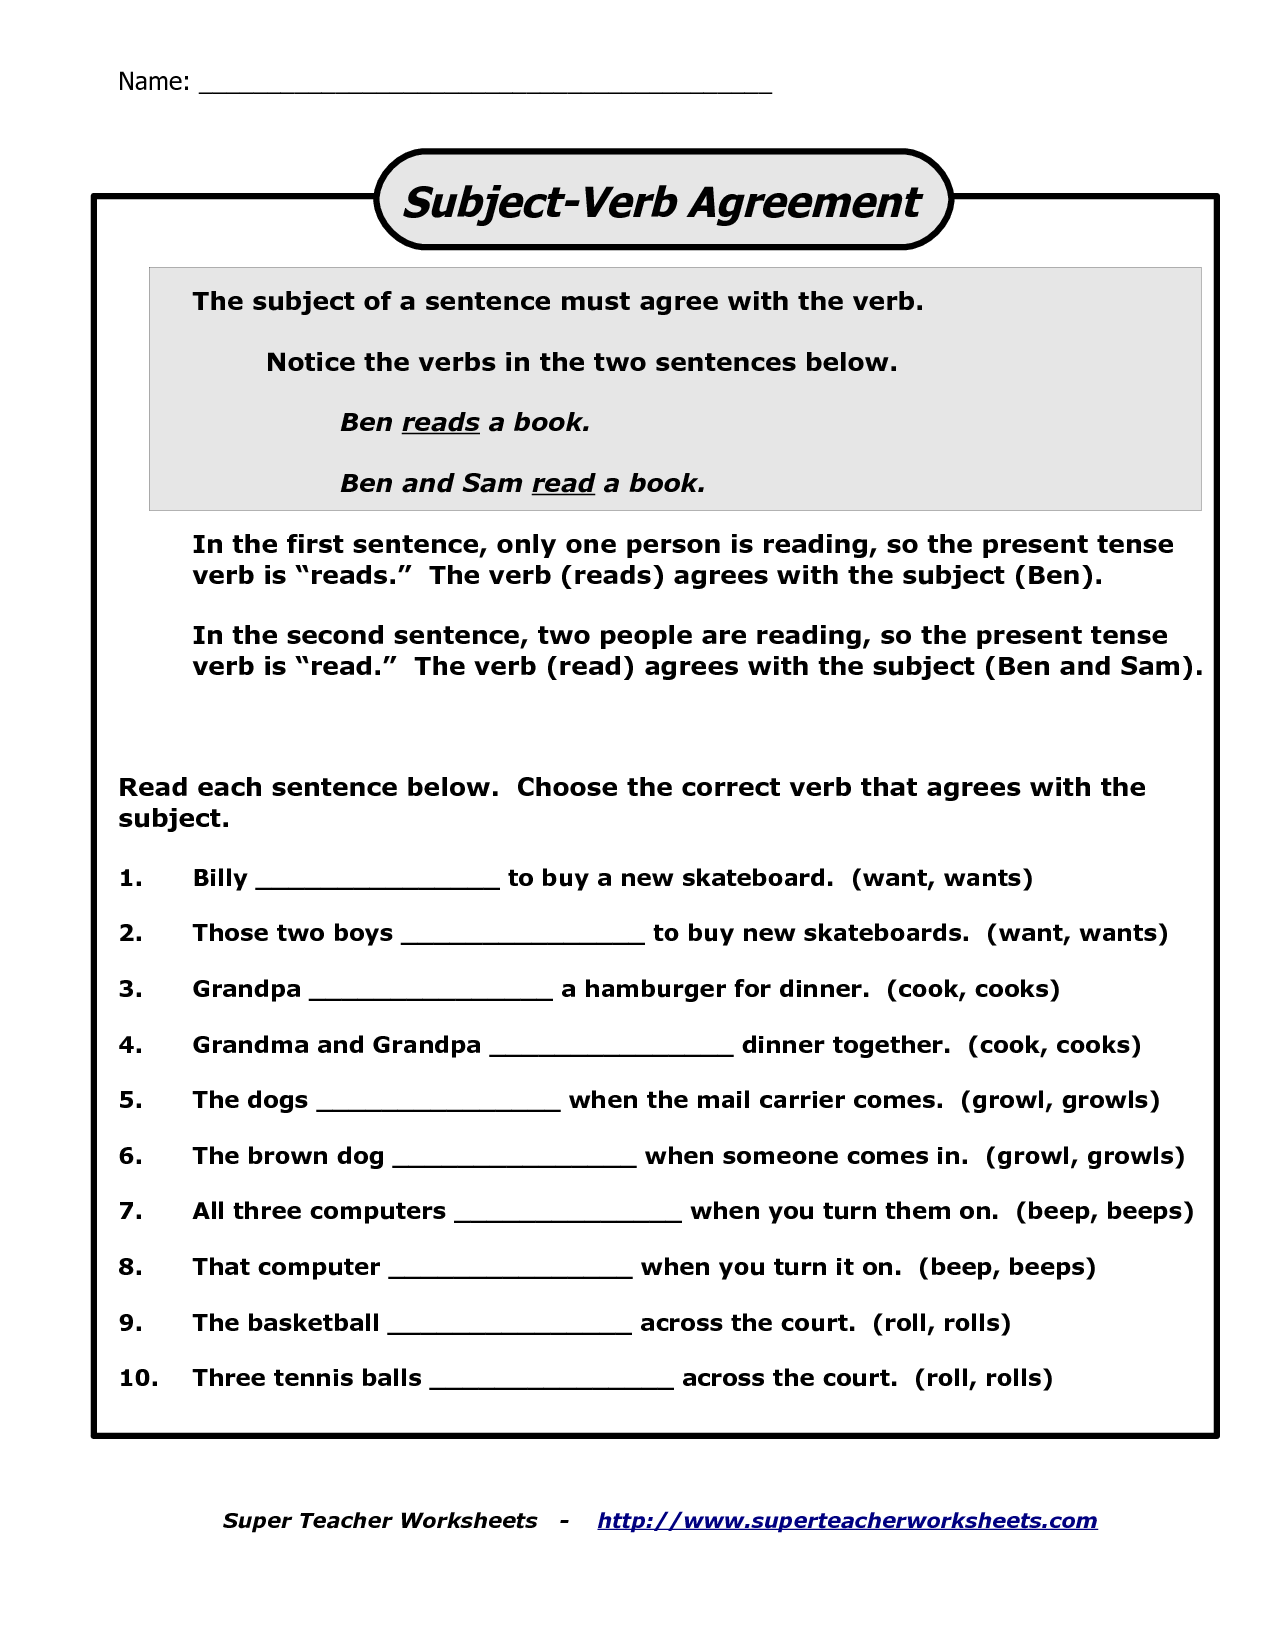 Worksheet Subject Verb Agreement Examples